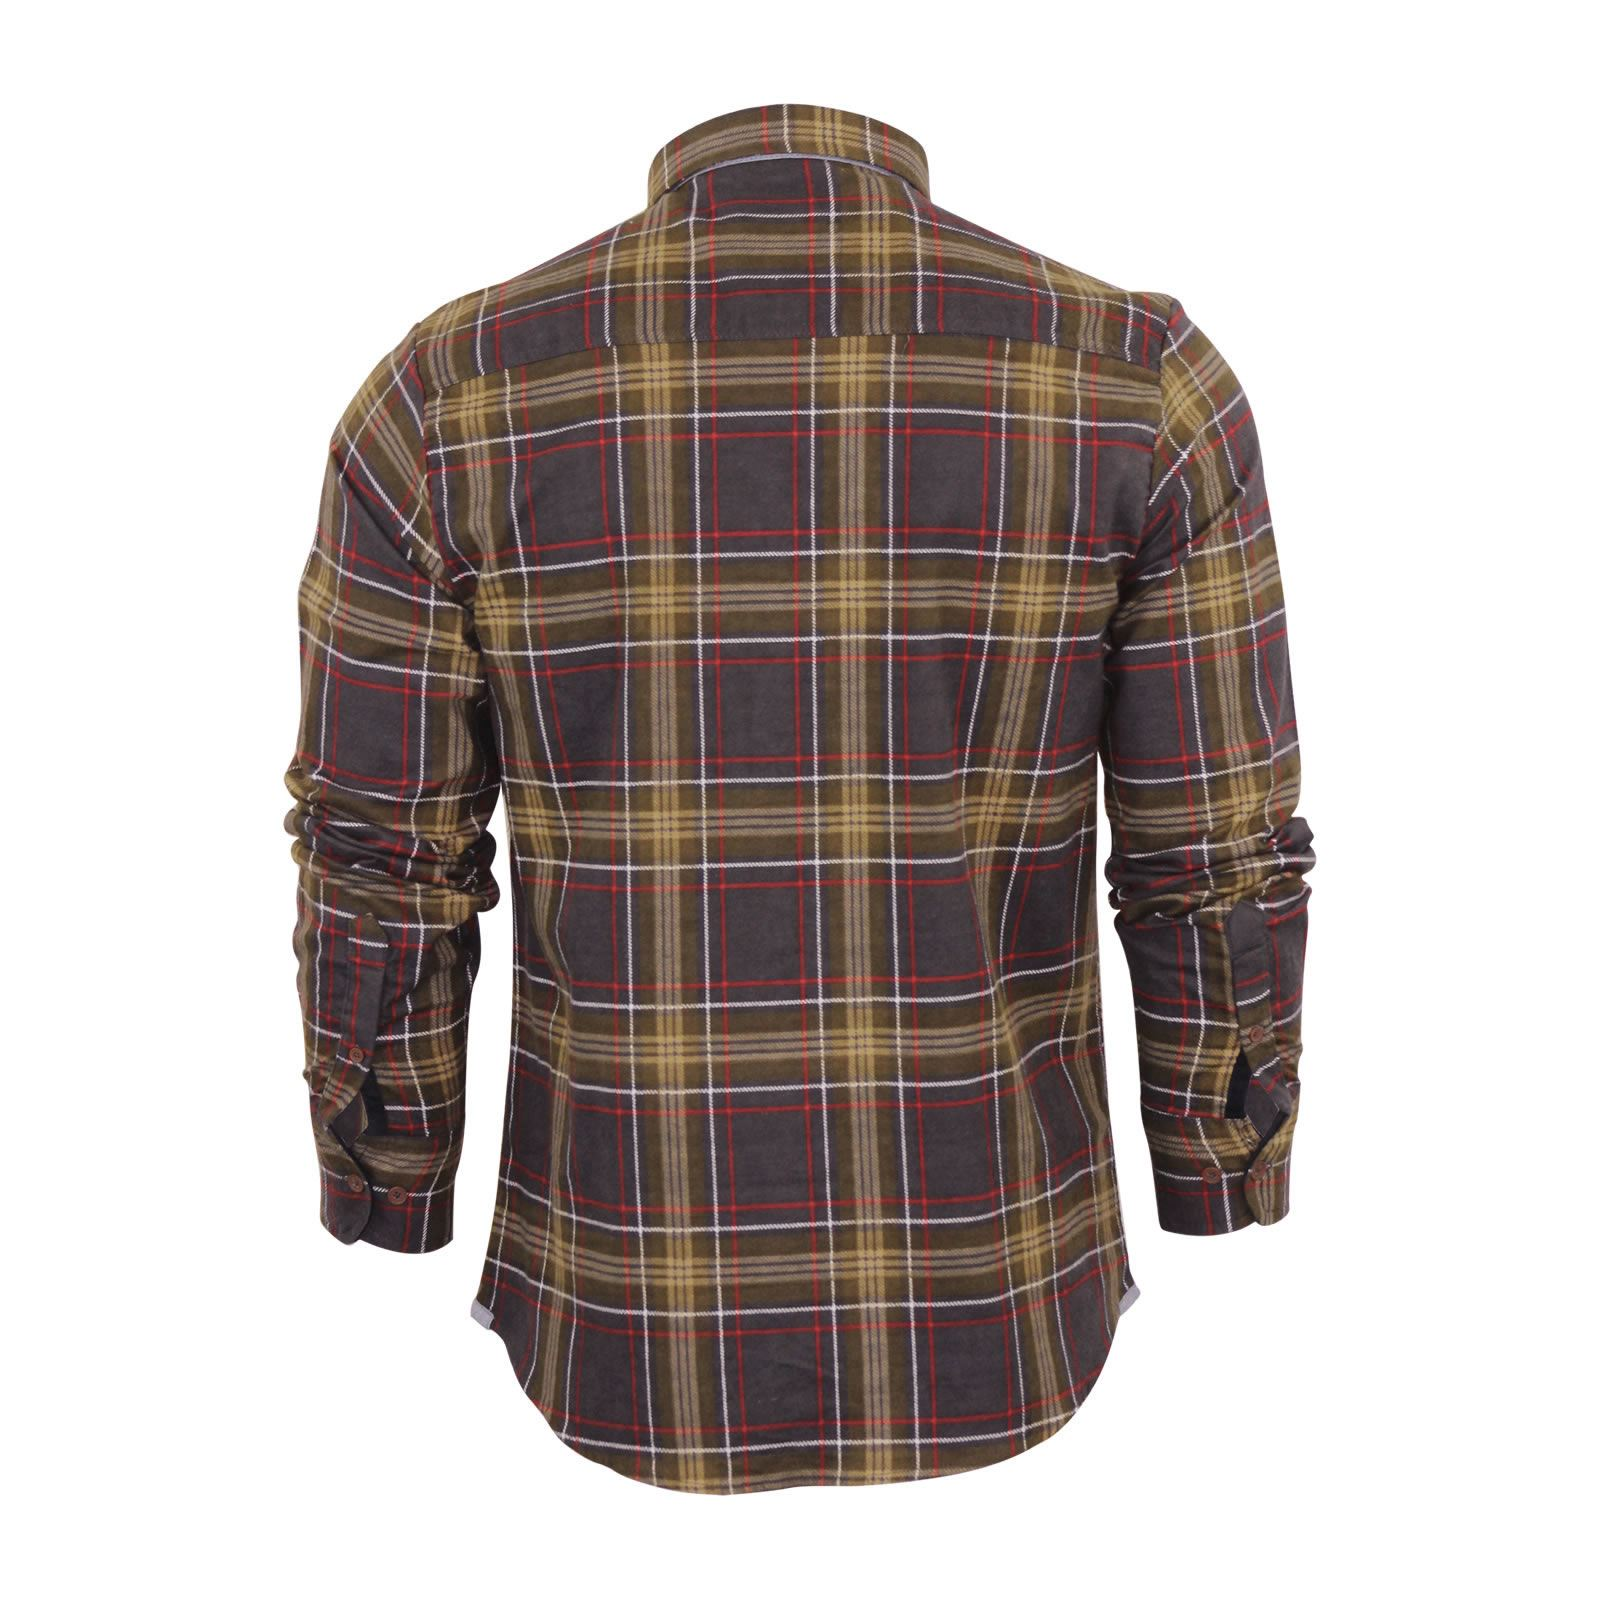 Mens-Check-Shirt-Brave-Soul-Flannel-Brushed-Cotton-Long-Sleeve-Casual-Top thumbnail 9